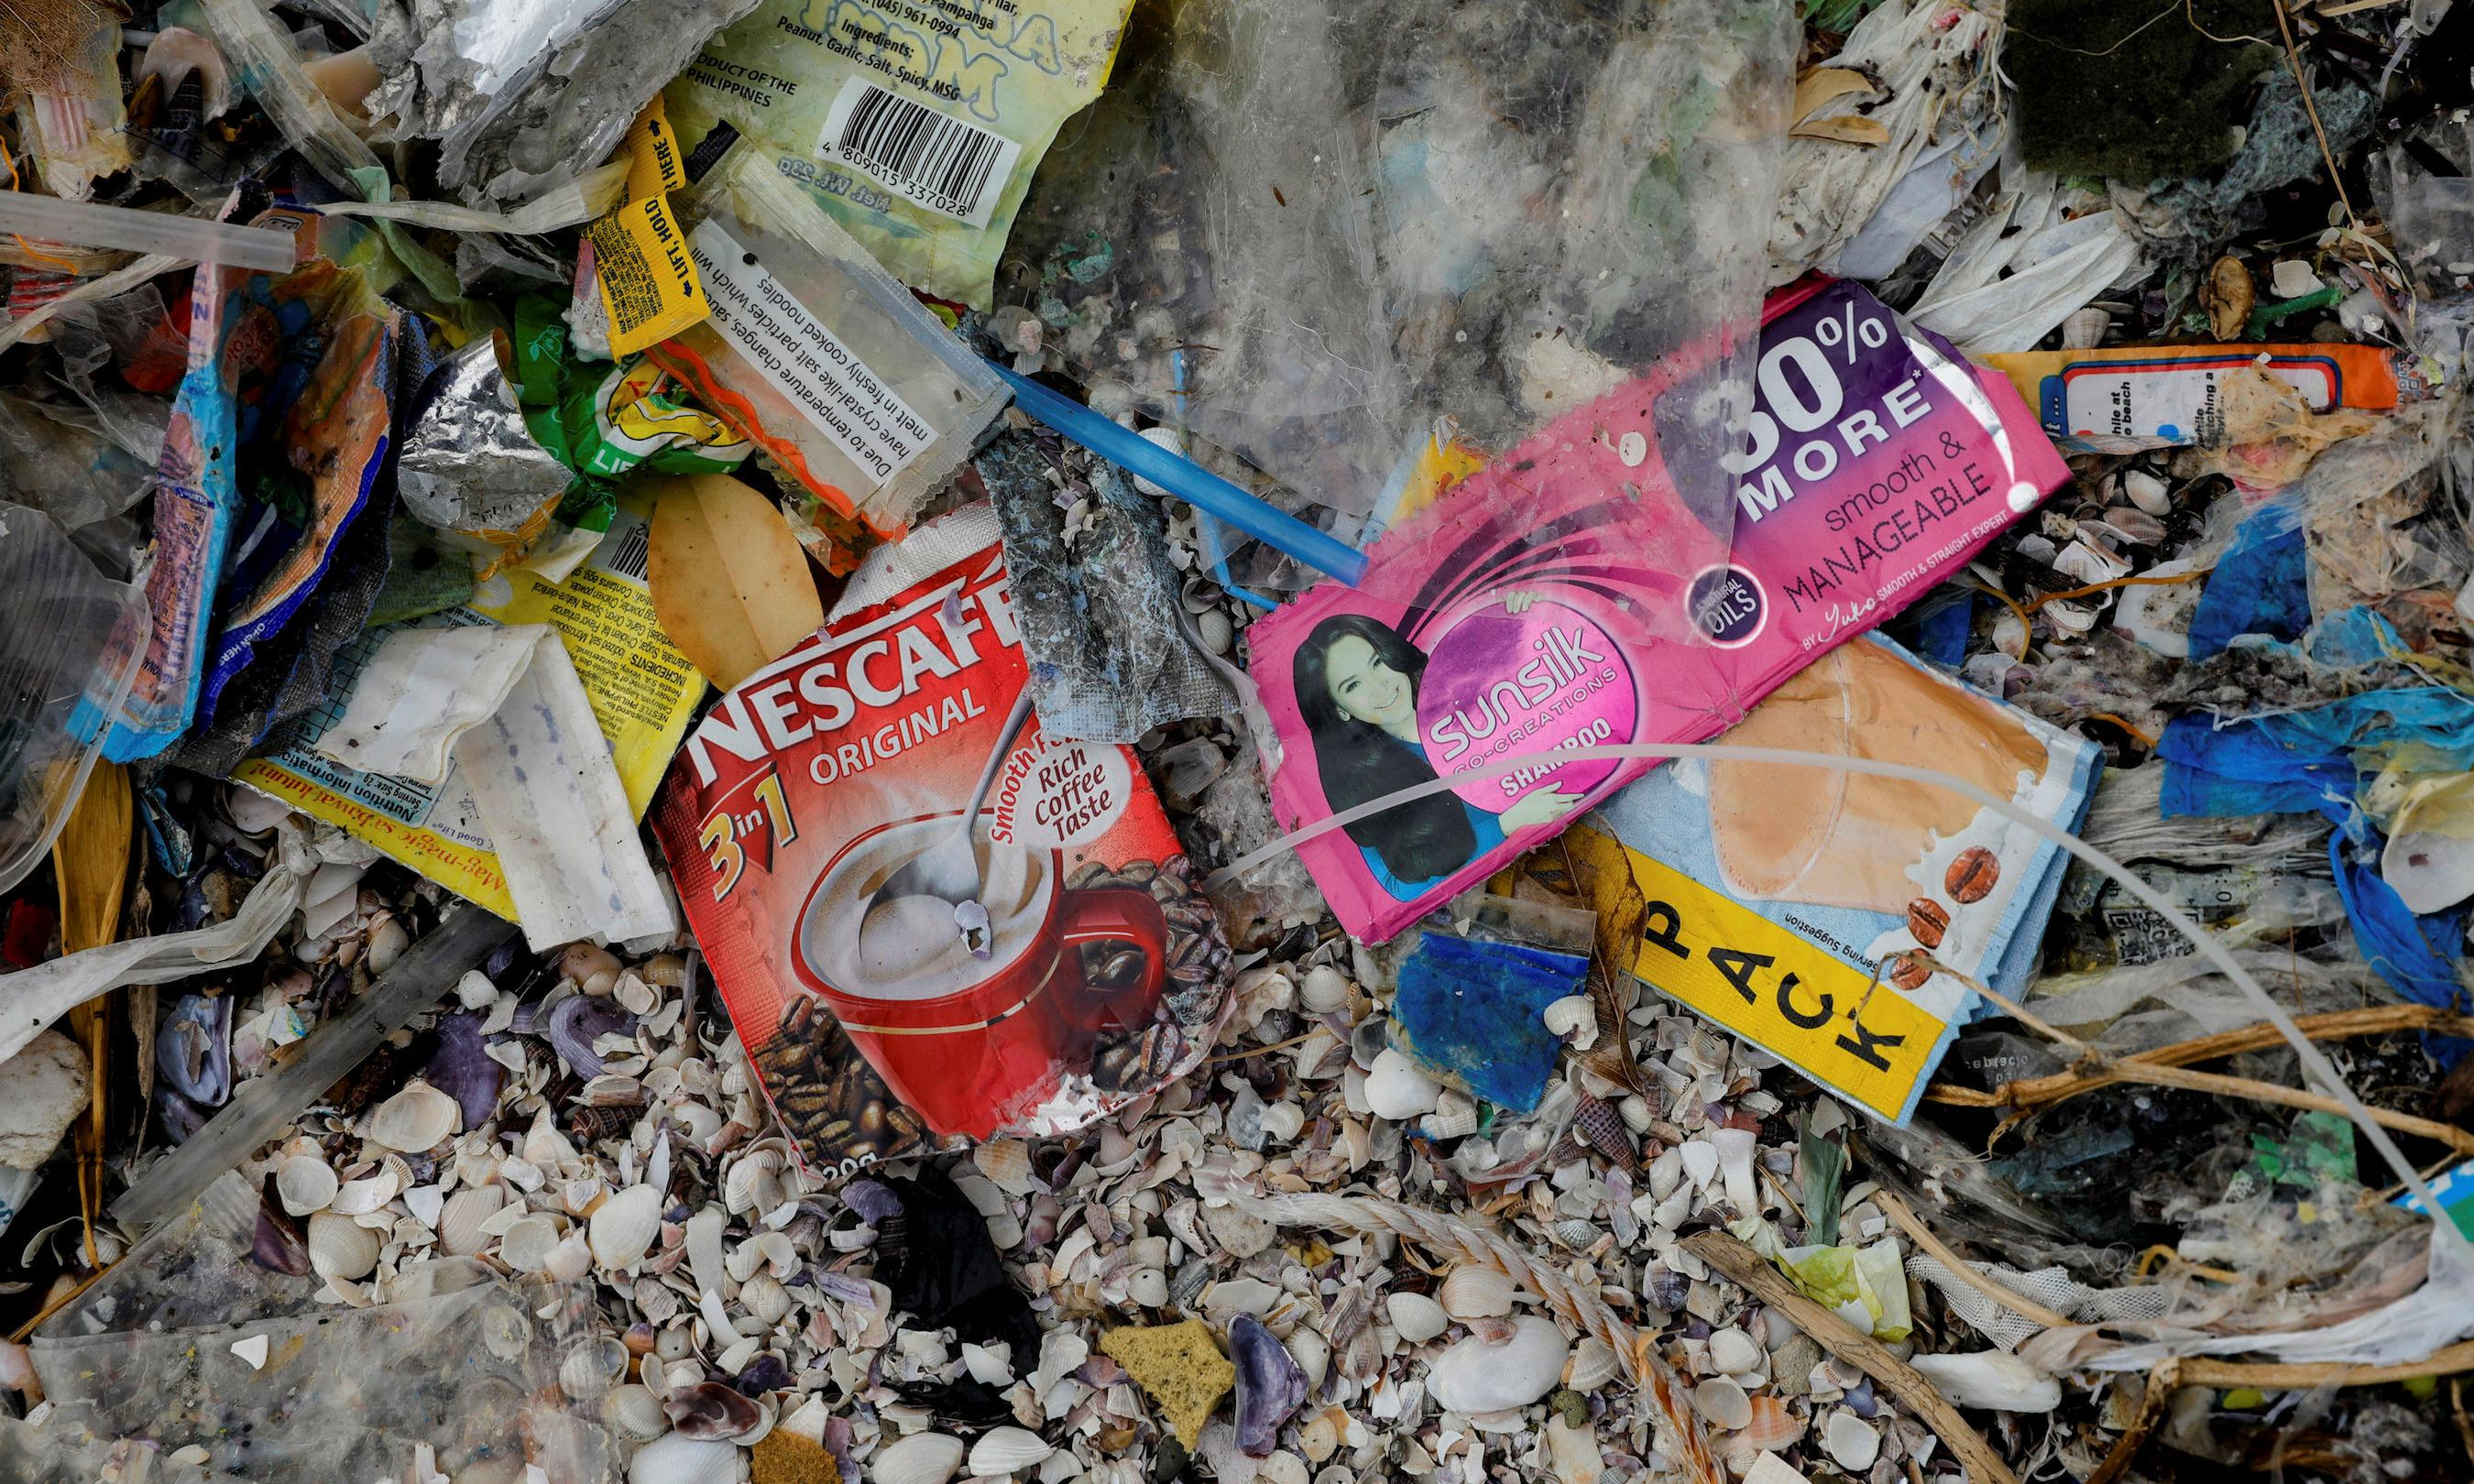 UK must act to stamp out 'curse' of plastic sachets, say campaigners